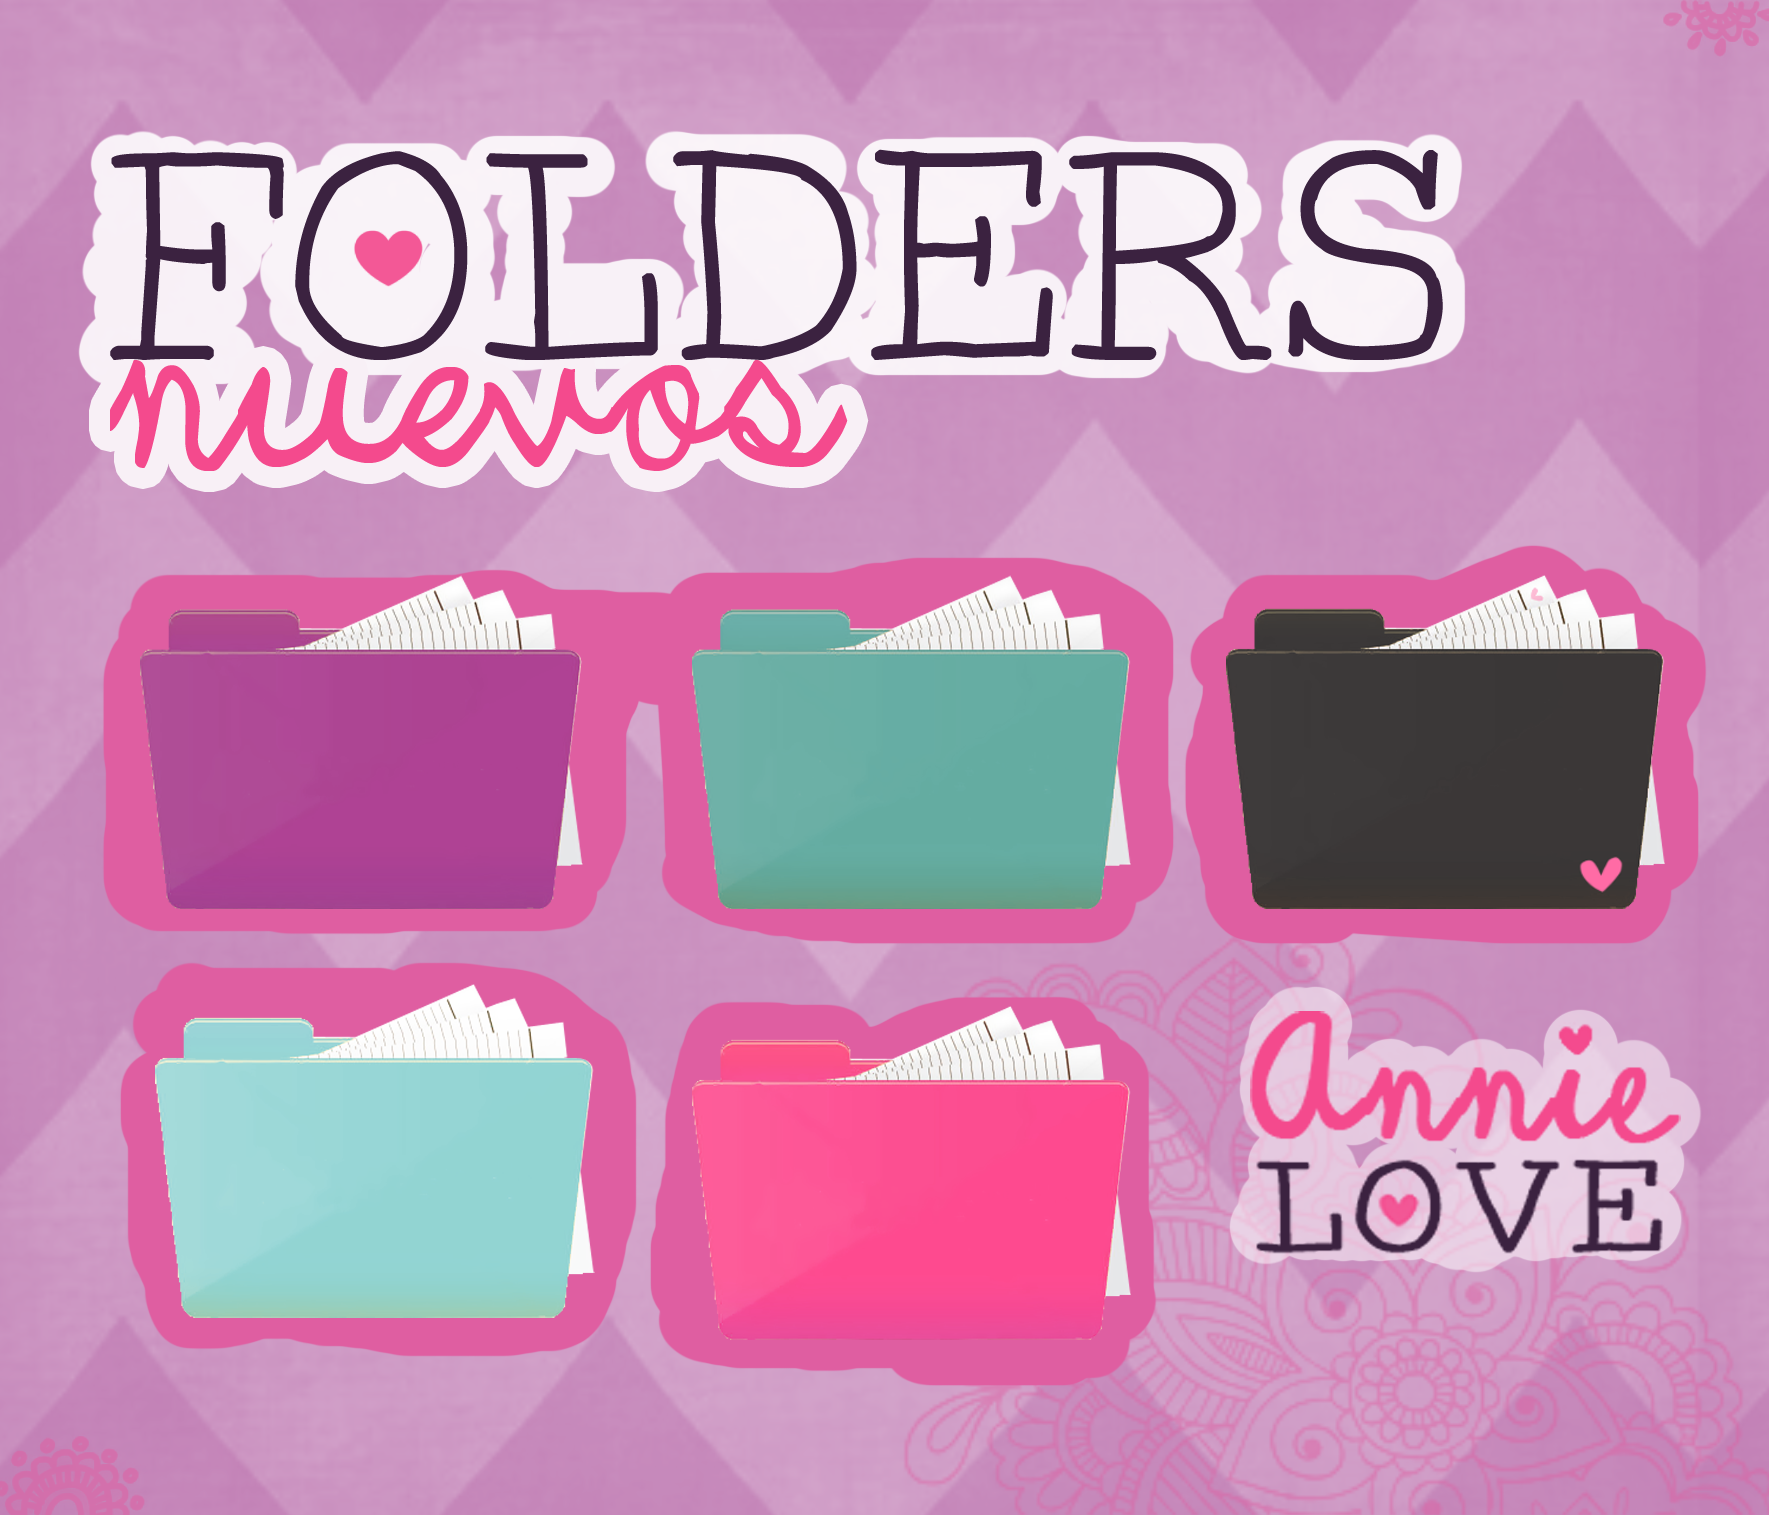 New folders by annielove (151 watchers) by Analaurasam